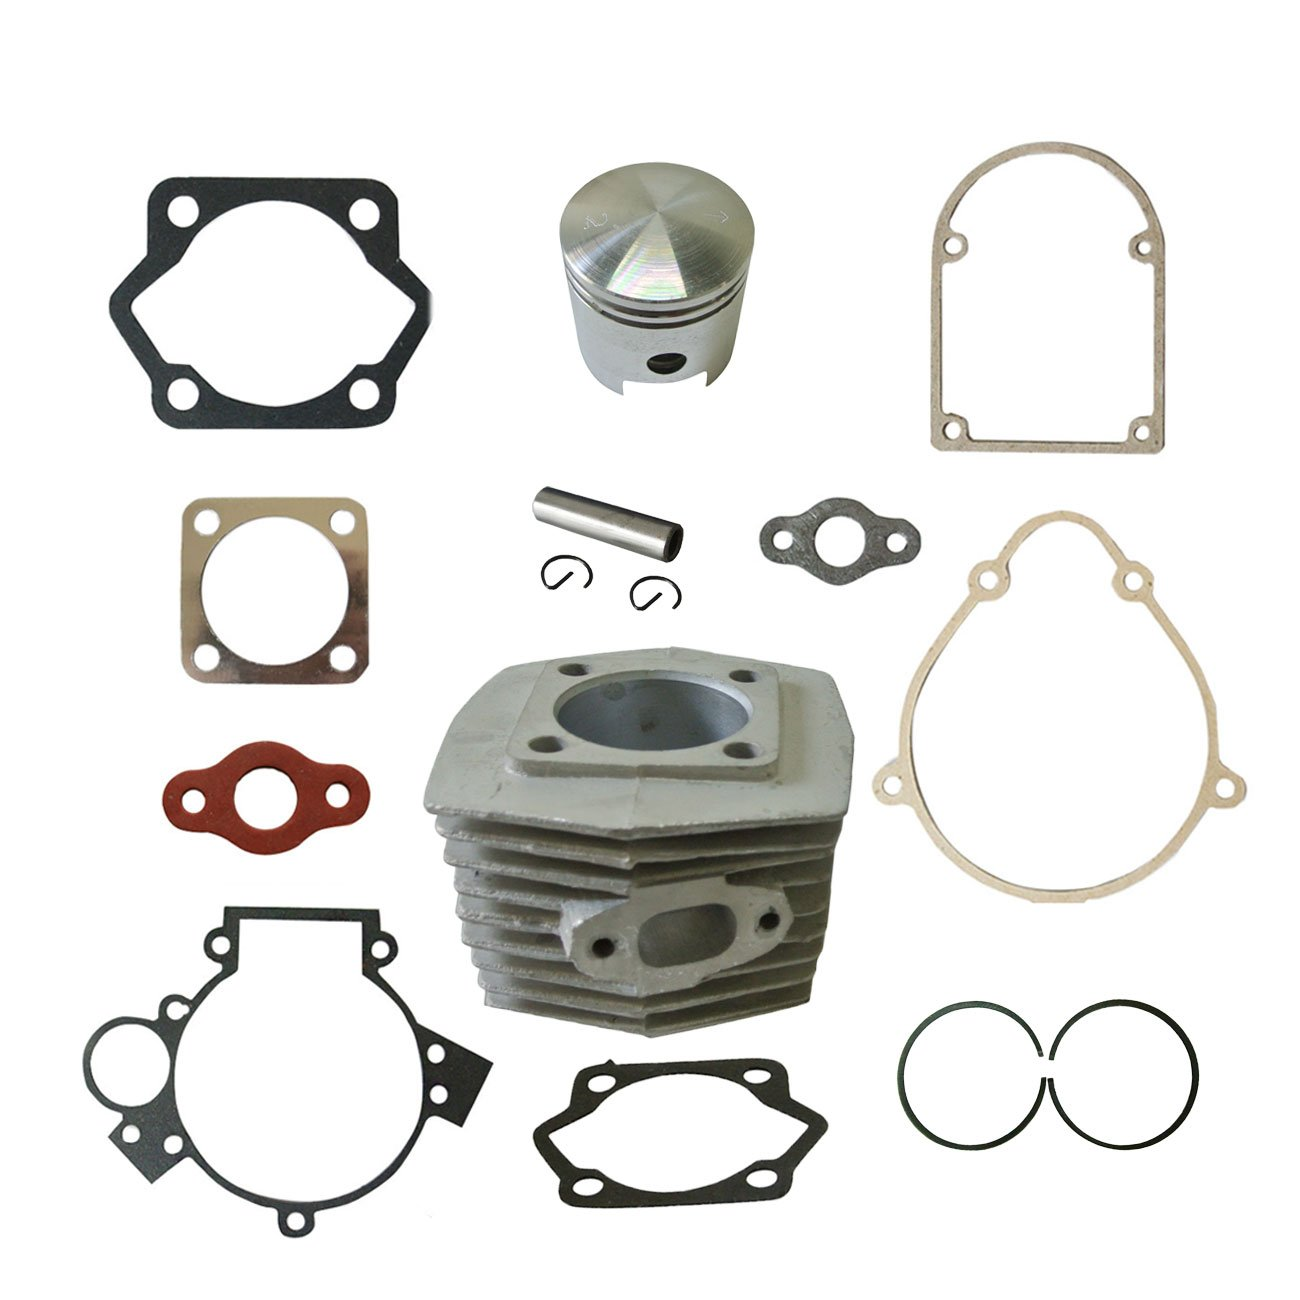 New Cylinder/&Piston/&Pin Clips Wrist/&Gasket Set Fit 80cc Motorized Bicycle Bike Motor JL JIANGLI LEGEND